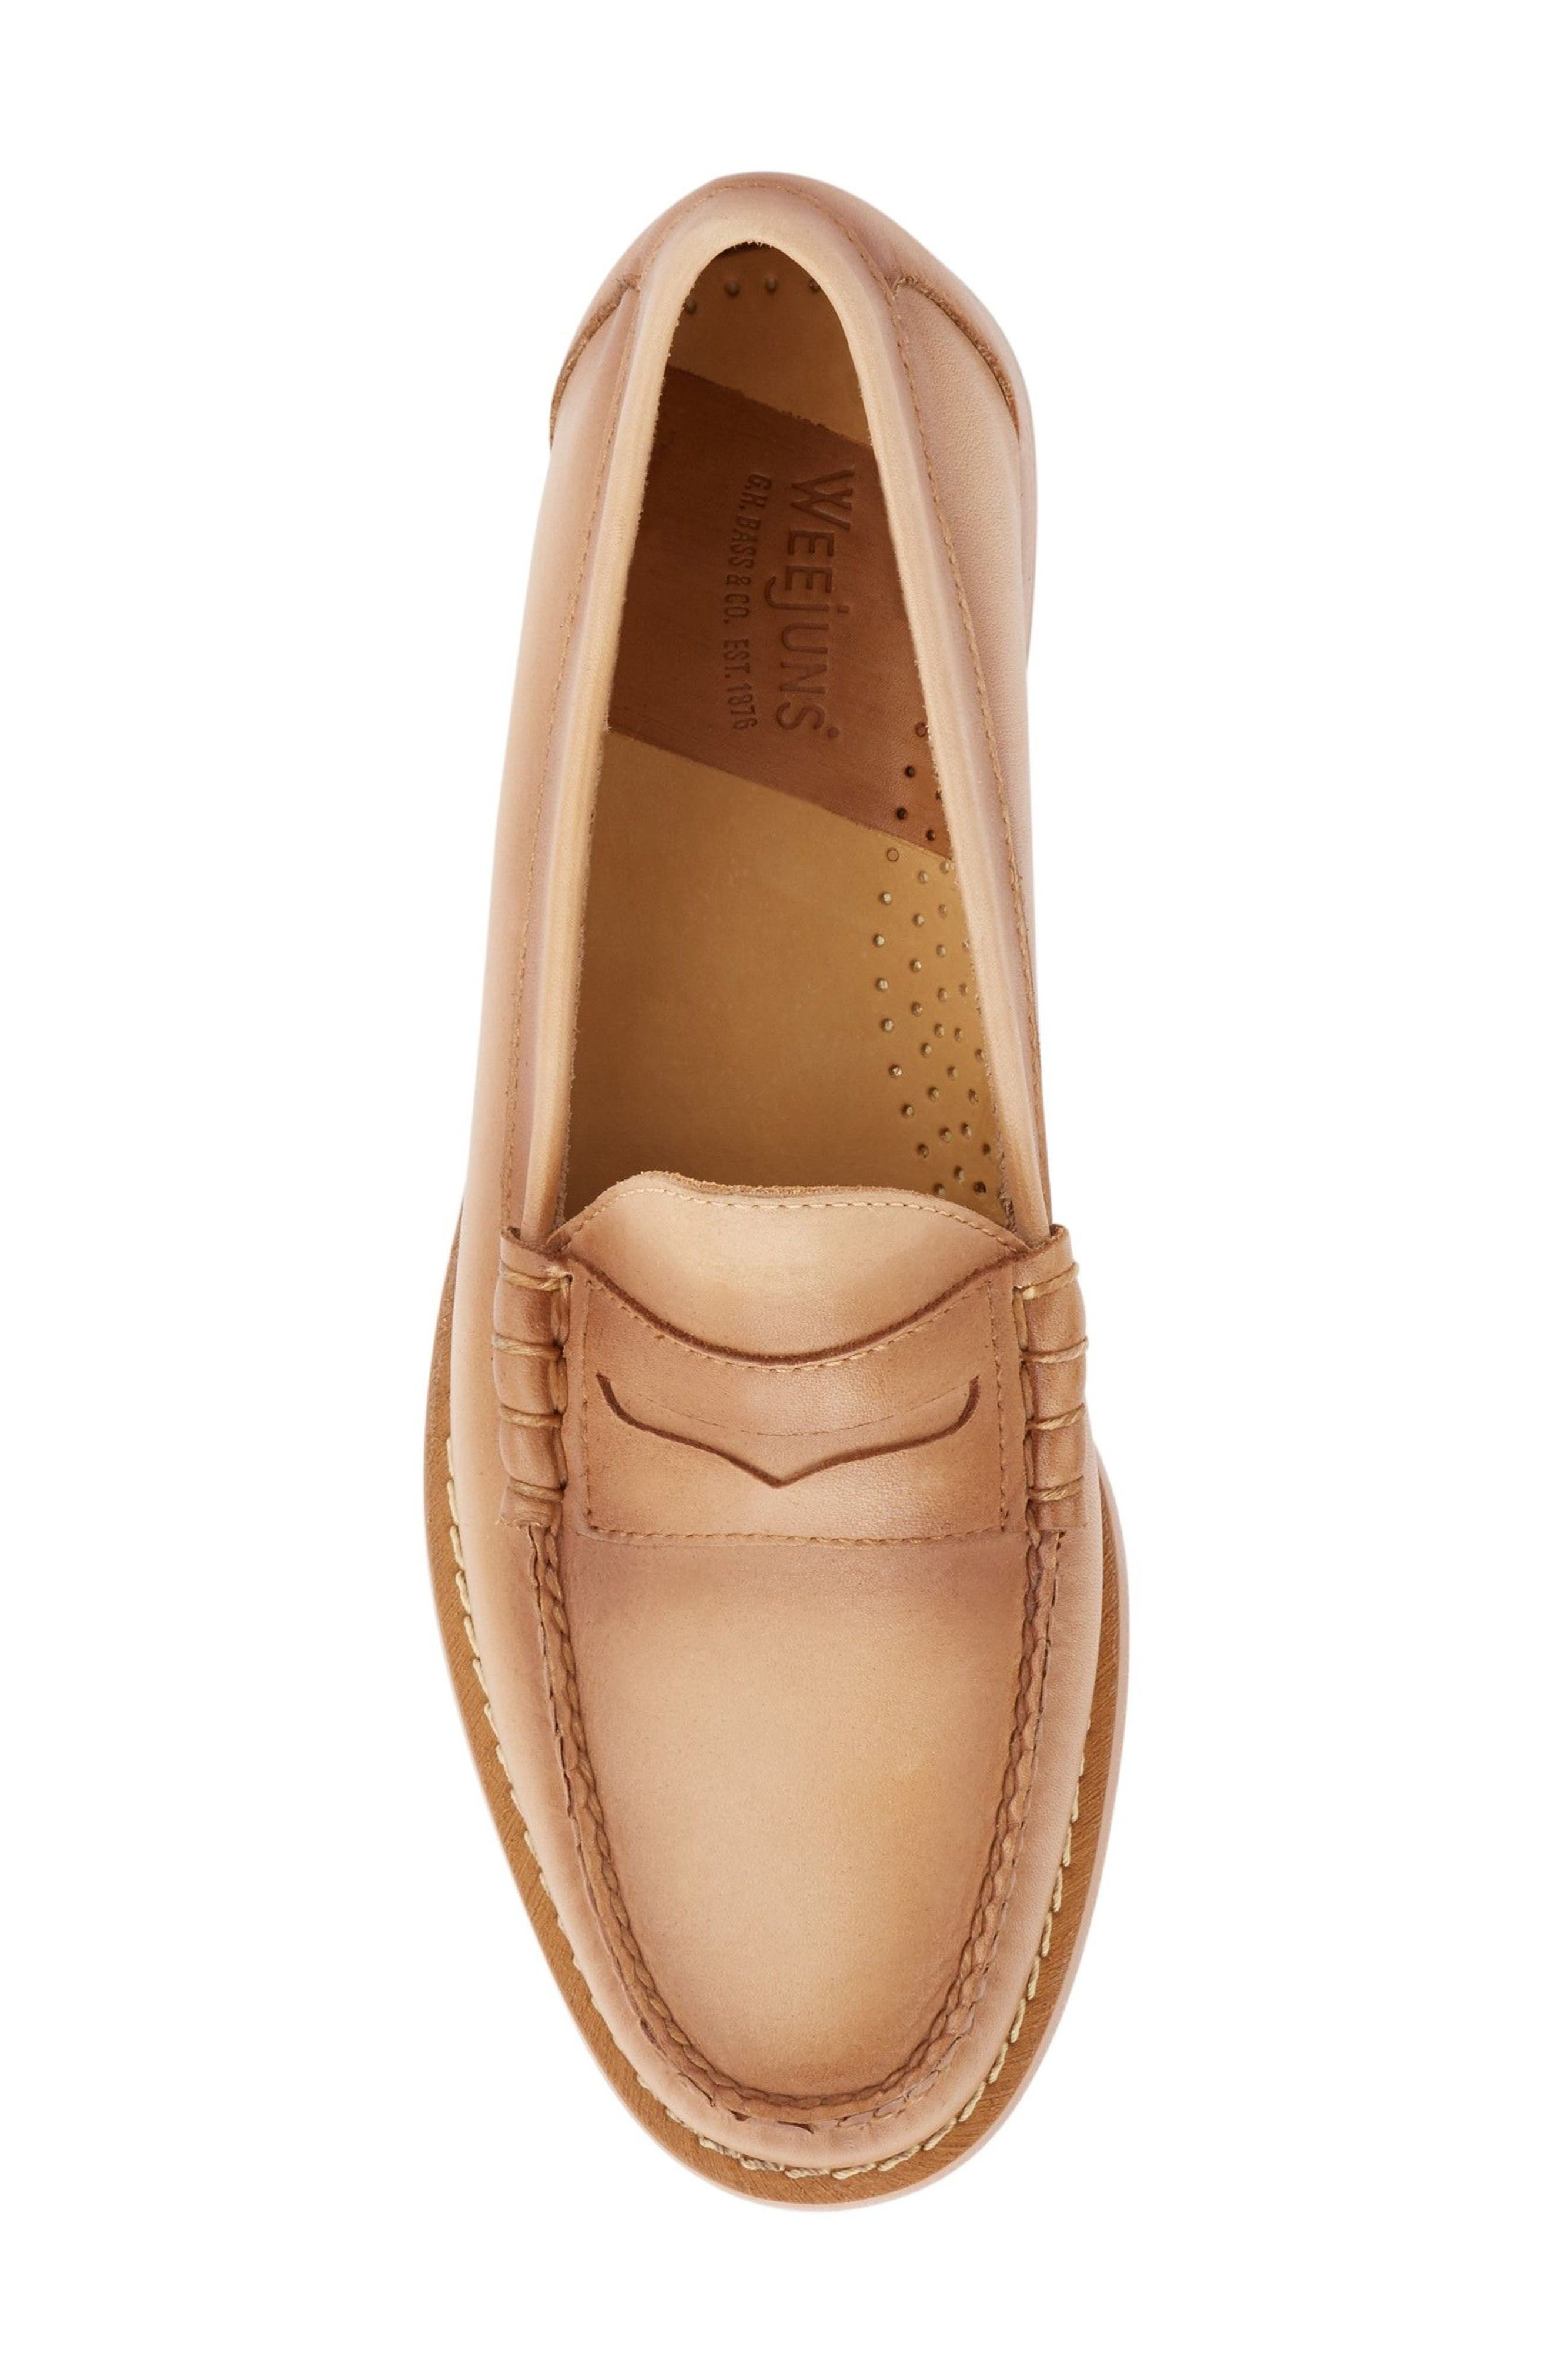 'Larson - Weejuns' Penny Loafer,                             Alternate thumbnail 5, color,                             VACHETTA LEATHER